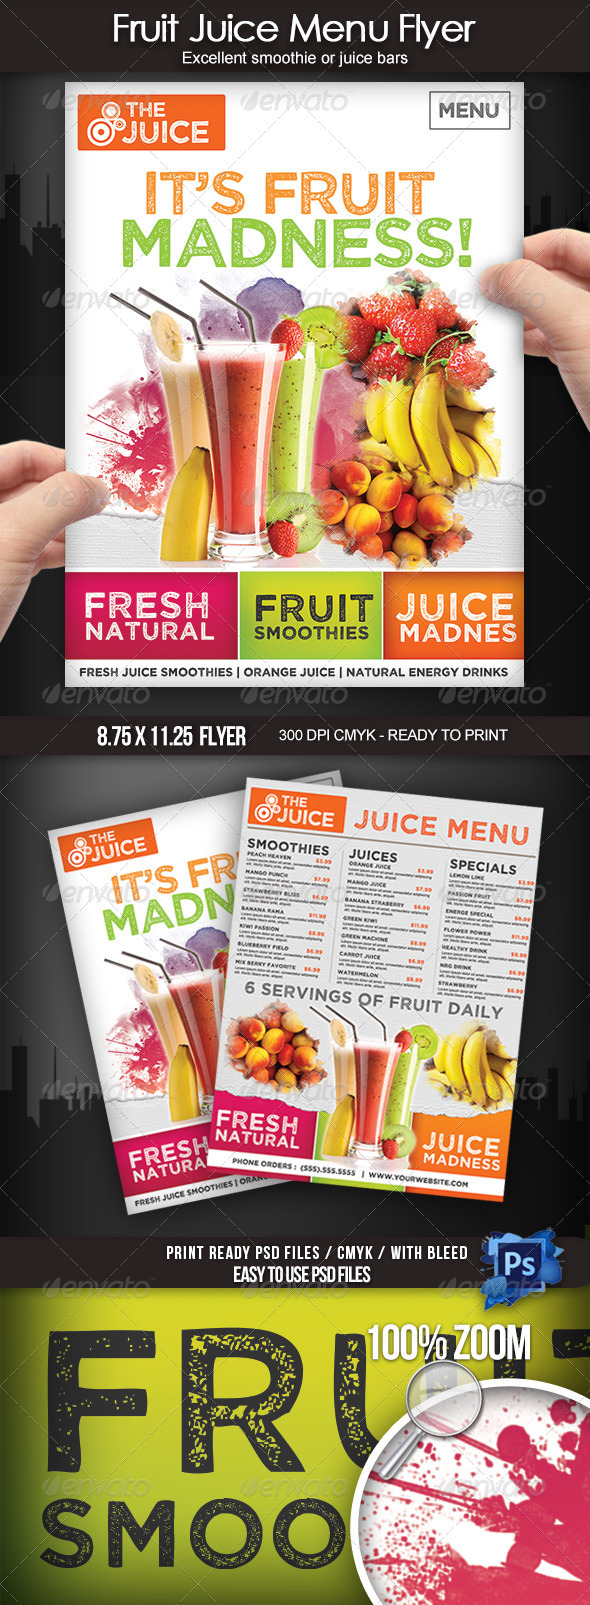 GraphicRiver Fruit Juice Menu Flyer 7698804